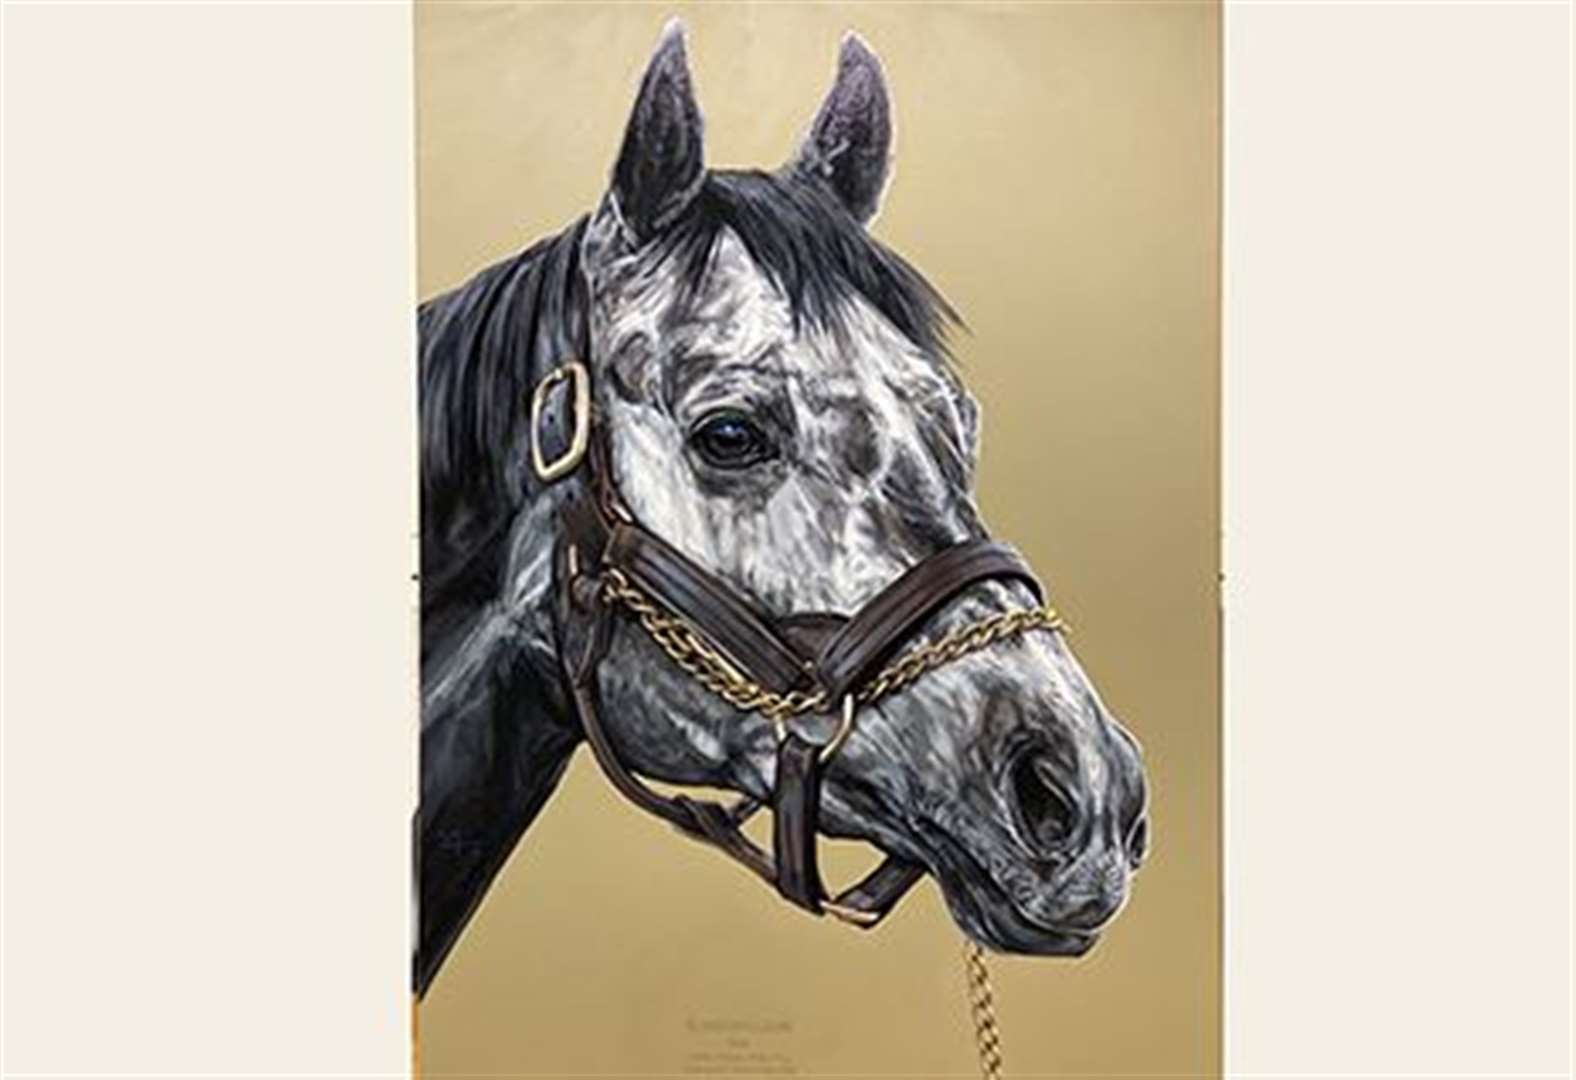 Reward offered for stolen racehorse painting